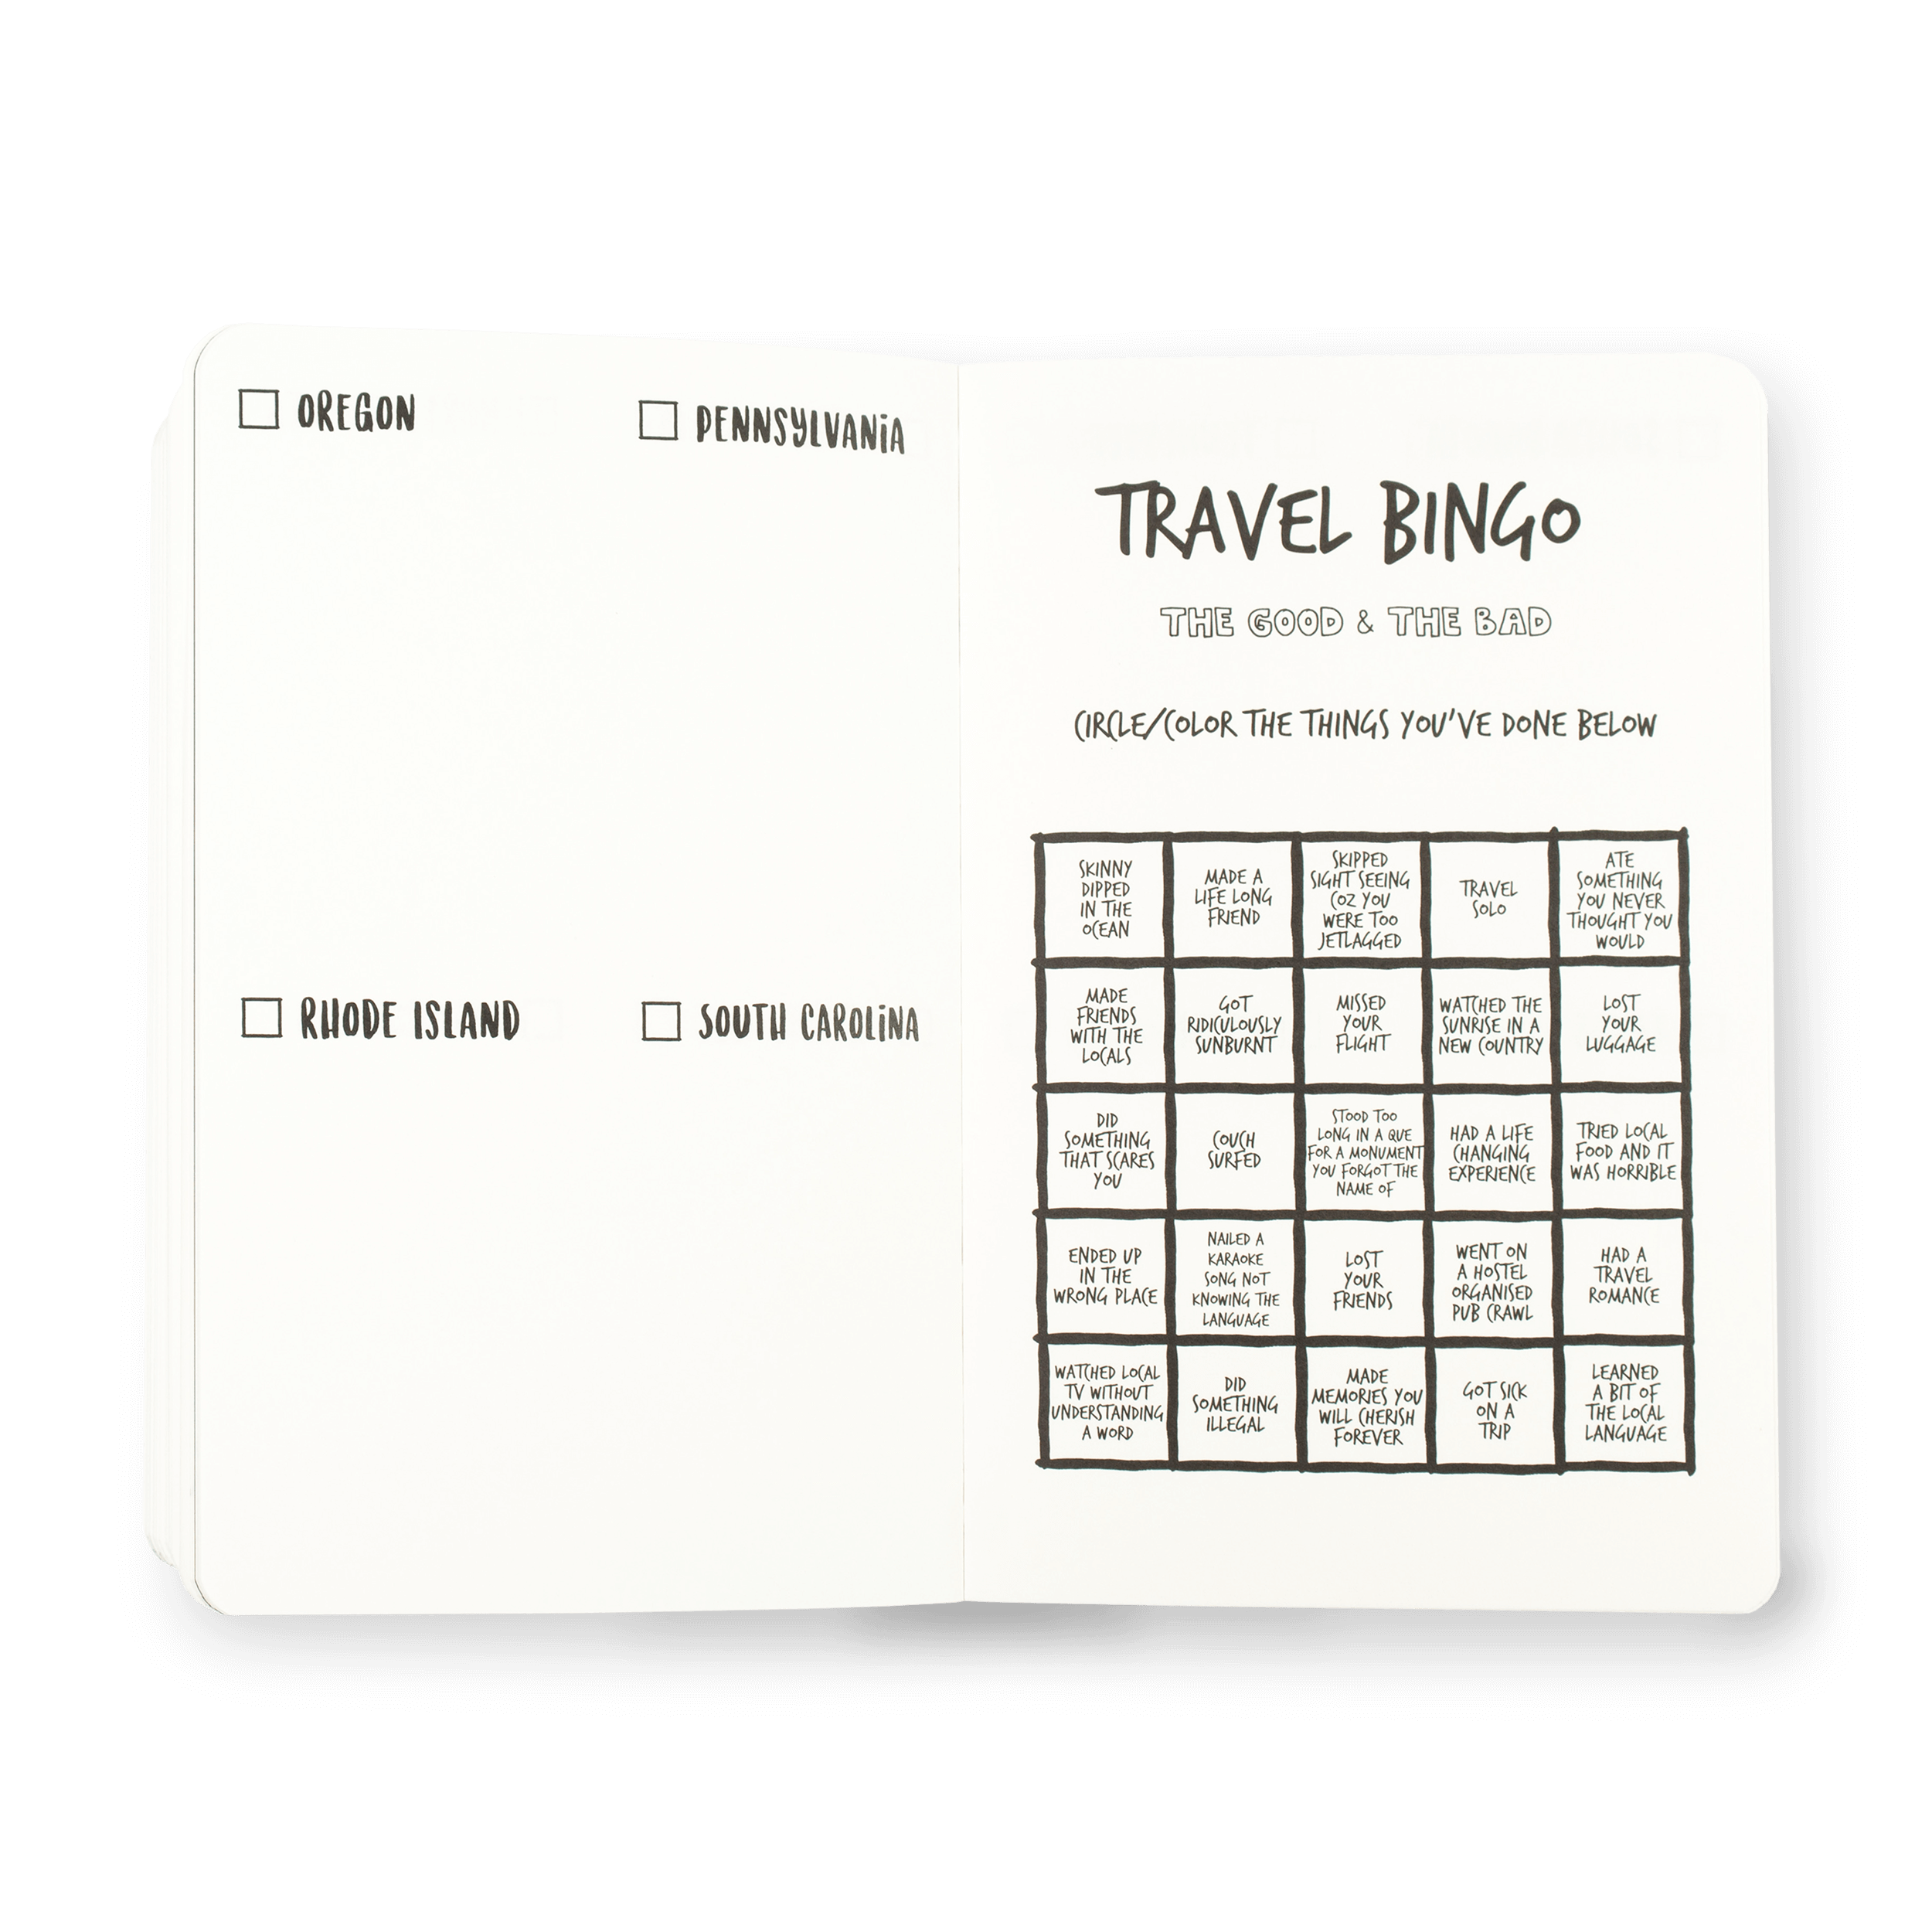 The Adventure Book pages travel bingo 50 United States of America USA Travel Journal